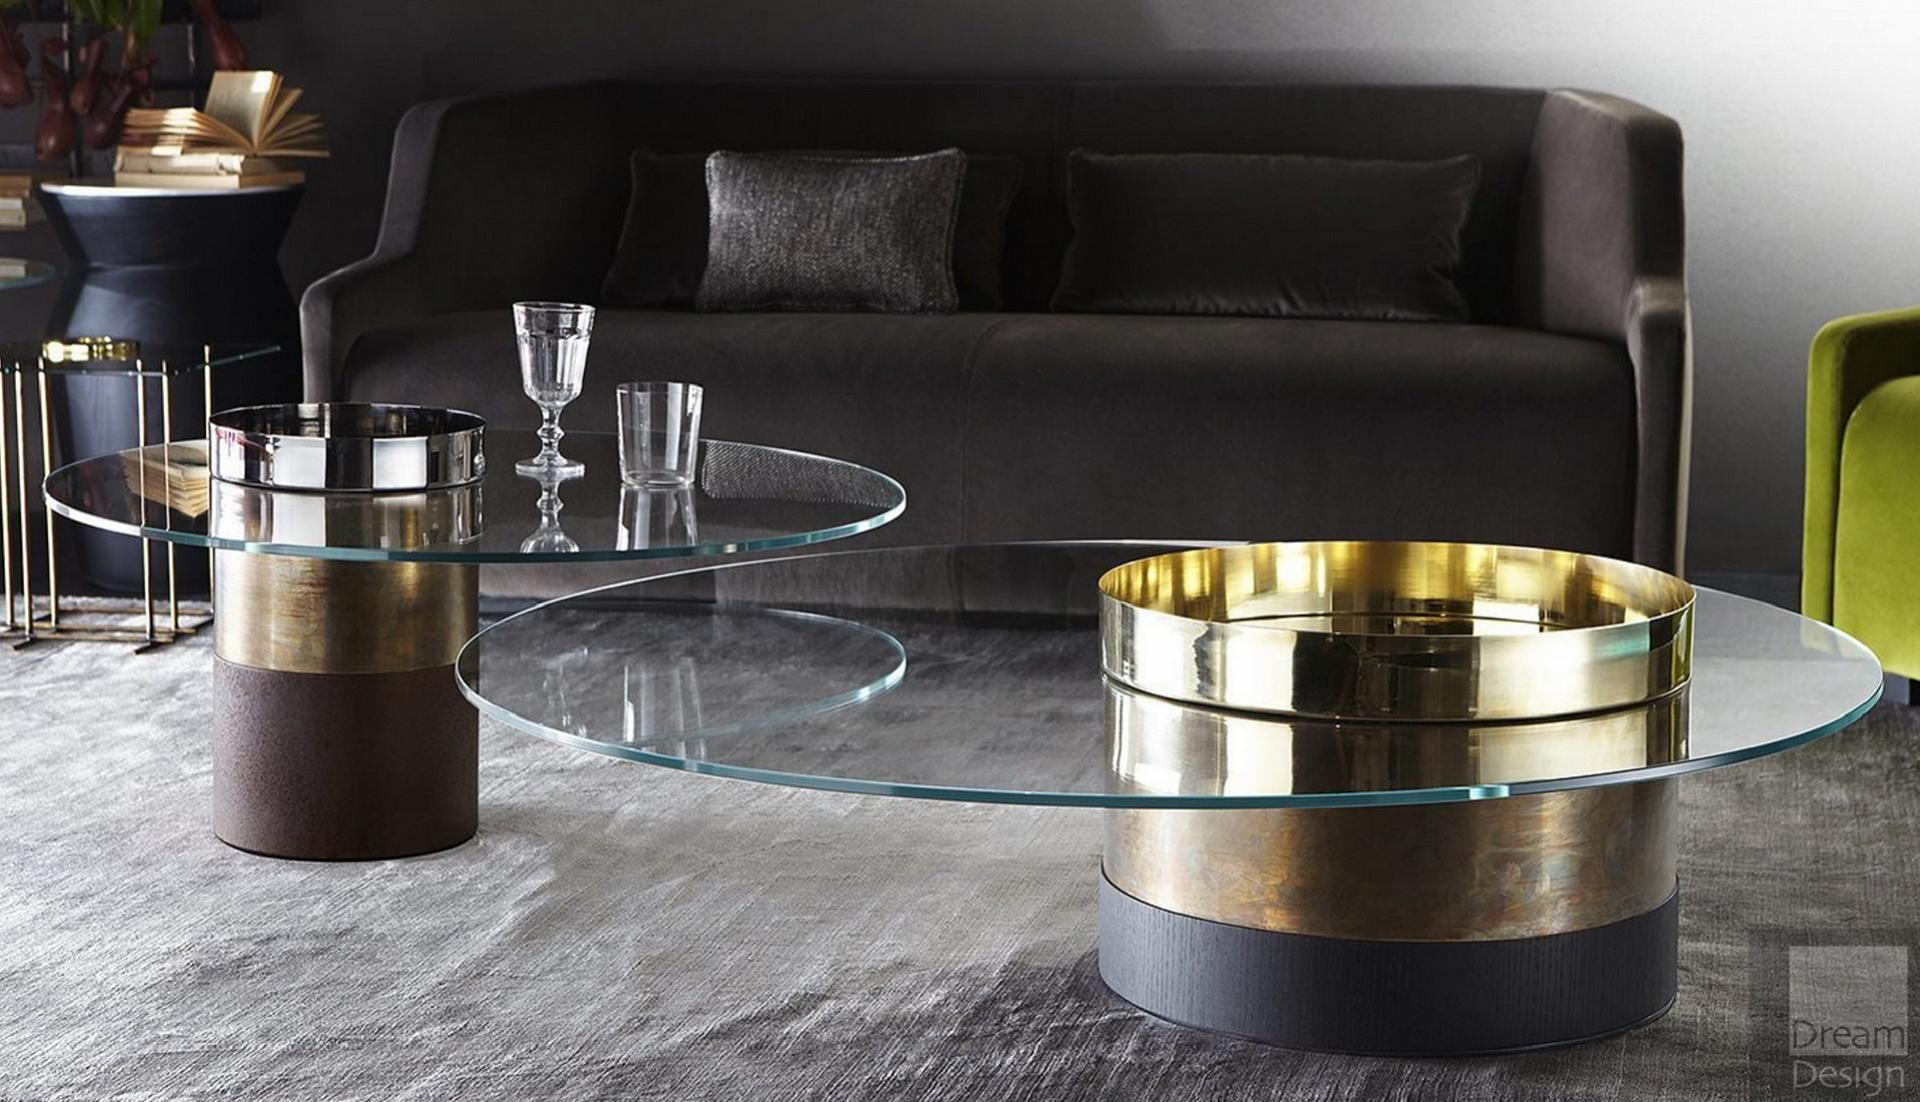 Haumea Tables By Massimo Castagna For Gallotti Radice Avaible In Four Different Heights And Models Quality An Coffee Table Design Coffee Table Coffe Table [ 1102 x 1920 Pixel ]